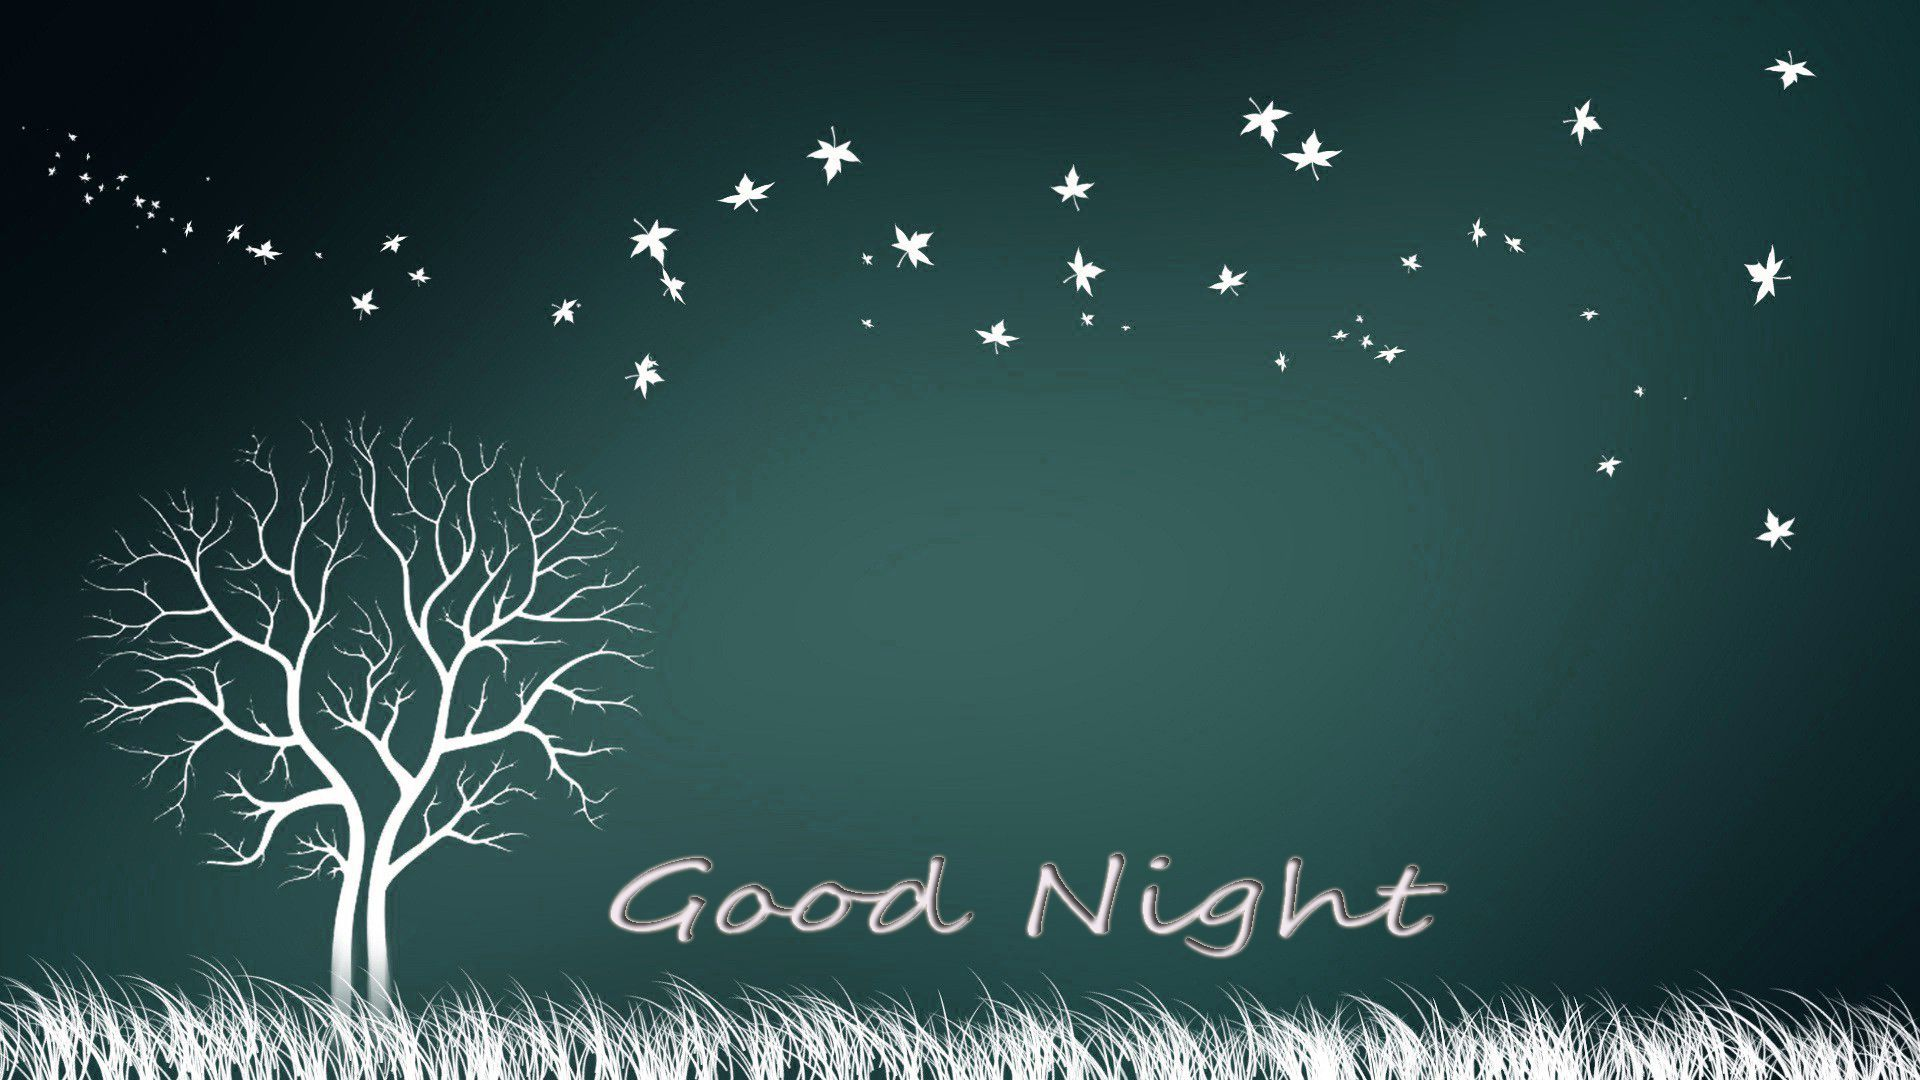 Good Night Picture Wallpaper Free Download 1024—795